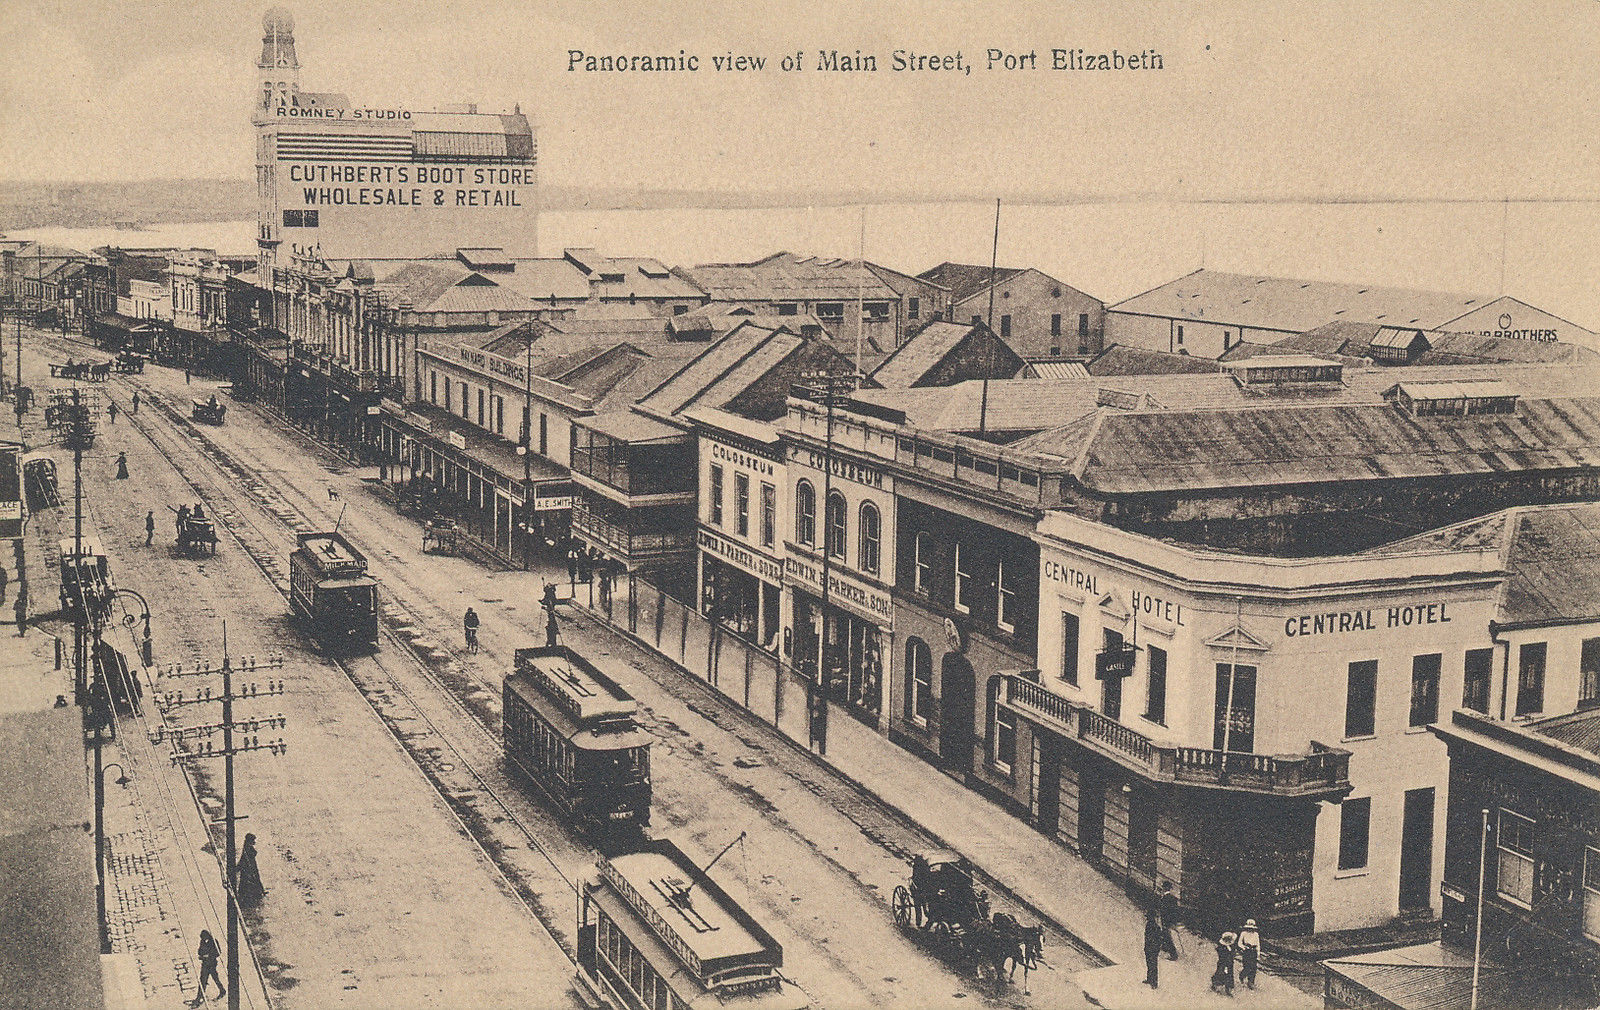 Main Street showing trams, Central Hotel and Cuthberts